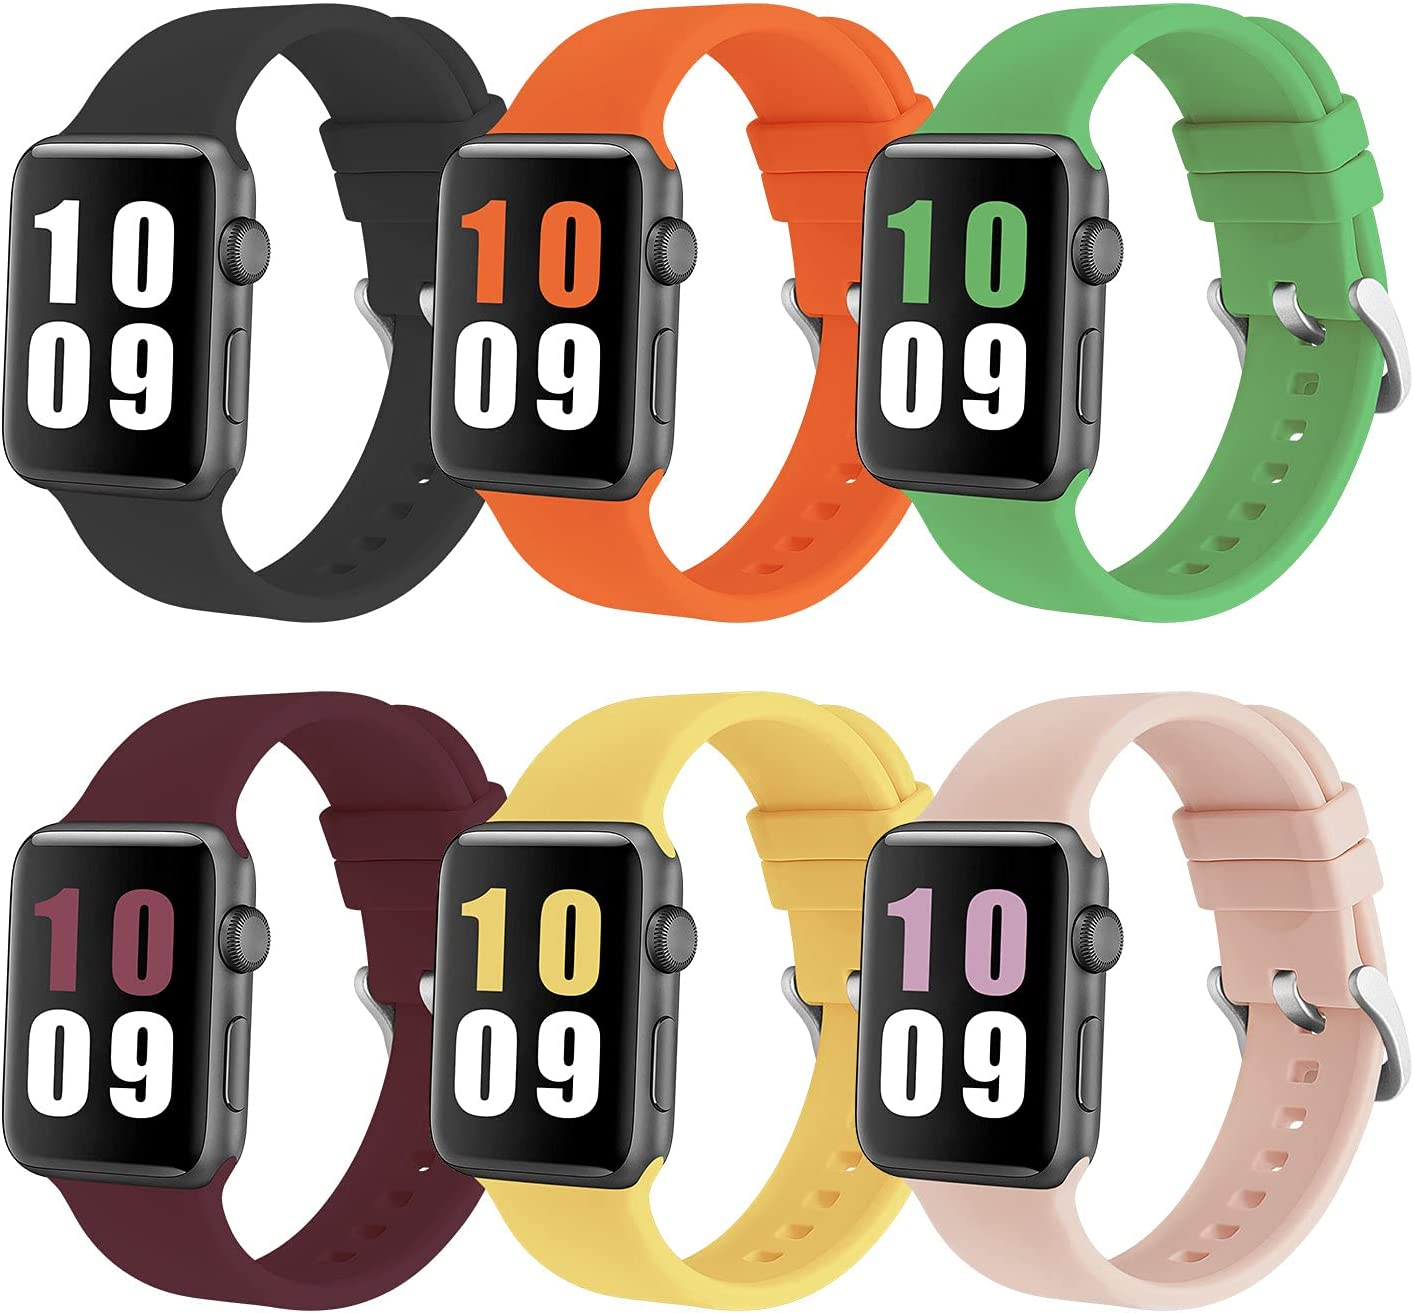 PROSRAT 6-Pack Sport Straps Compatible With Apple Watch Bands 38mm 40mm 42mm 44mm,Soft Silicone Replacement Bands for iWatch Series 6/SE/5/4/3/2/1 for Women Men (Black/Orange/Mint Green/Wine Red/Pink Sand/Yellow, 38mm/40mm)